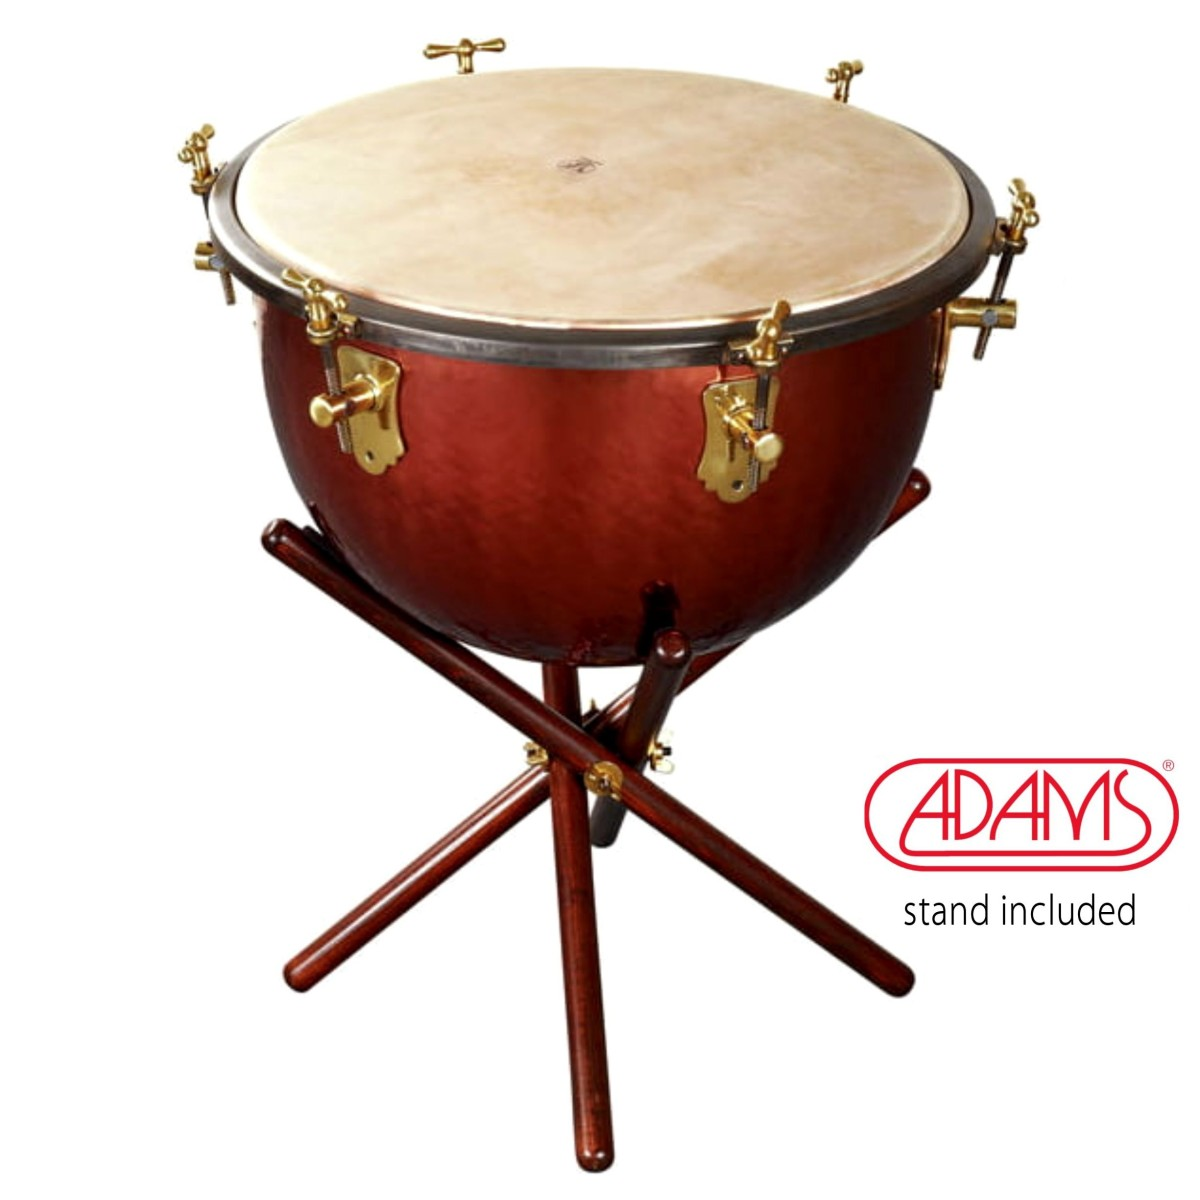 Adams Baroque Timpani Ø 23 Central Tuning System incl. stand